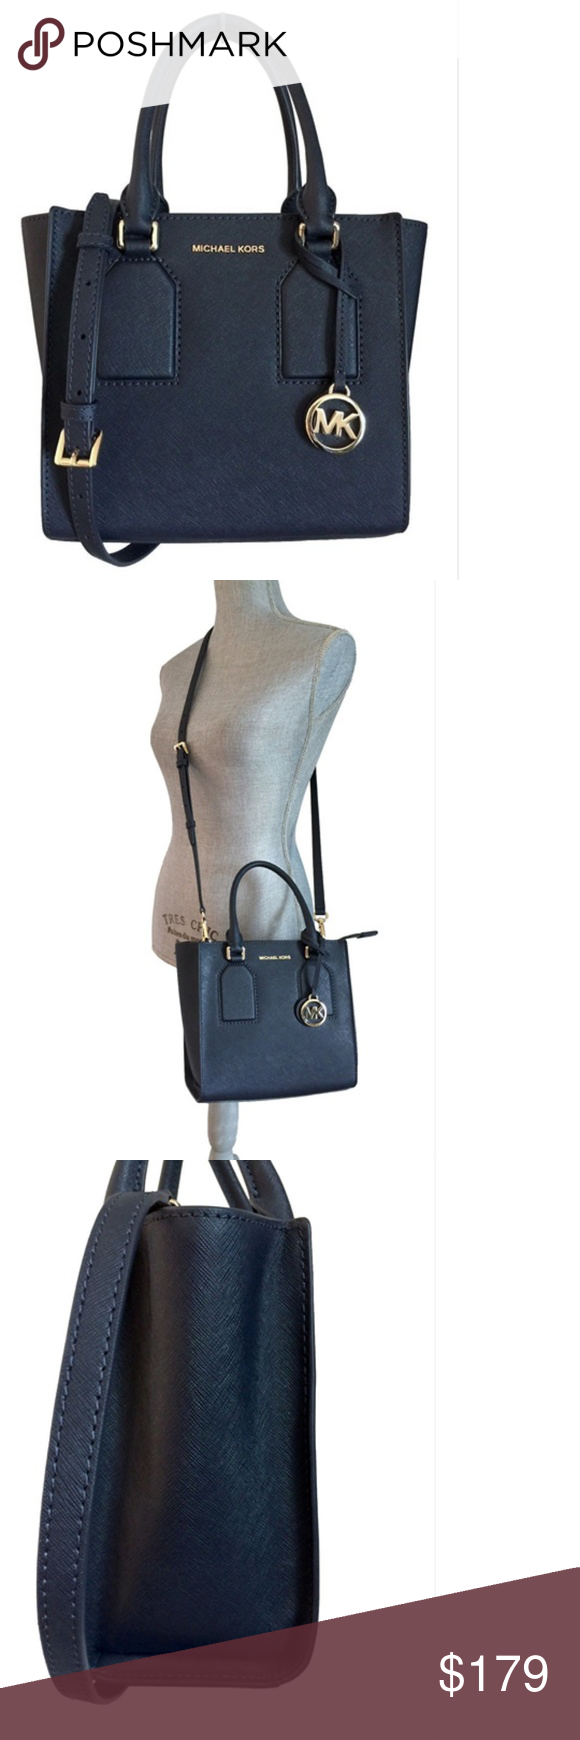 7719c69b75 MICHAEL Kors Selby Saffiano Leather Crossbody Navy Michael Kors Selby  Messenger - No Trades  Size